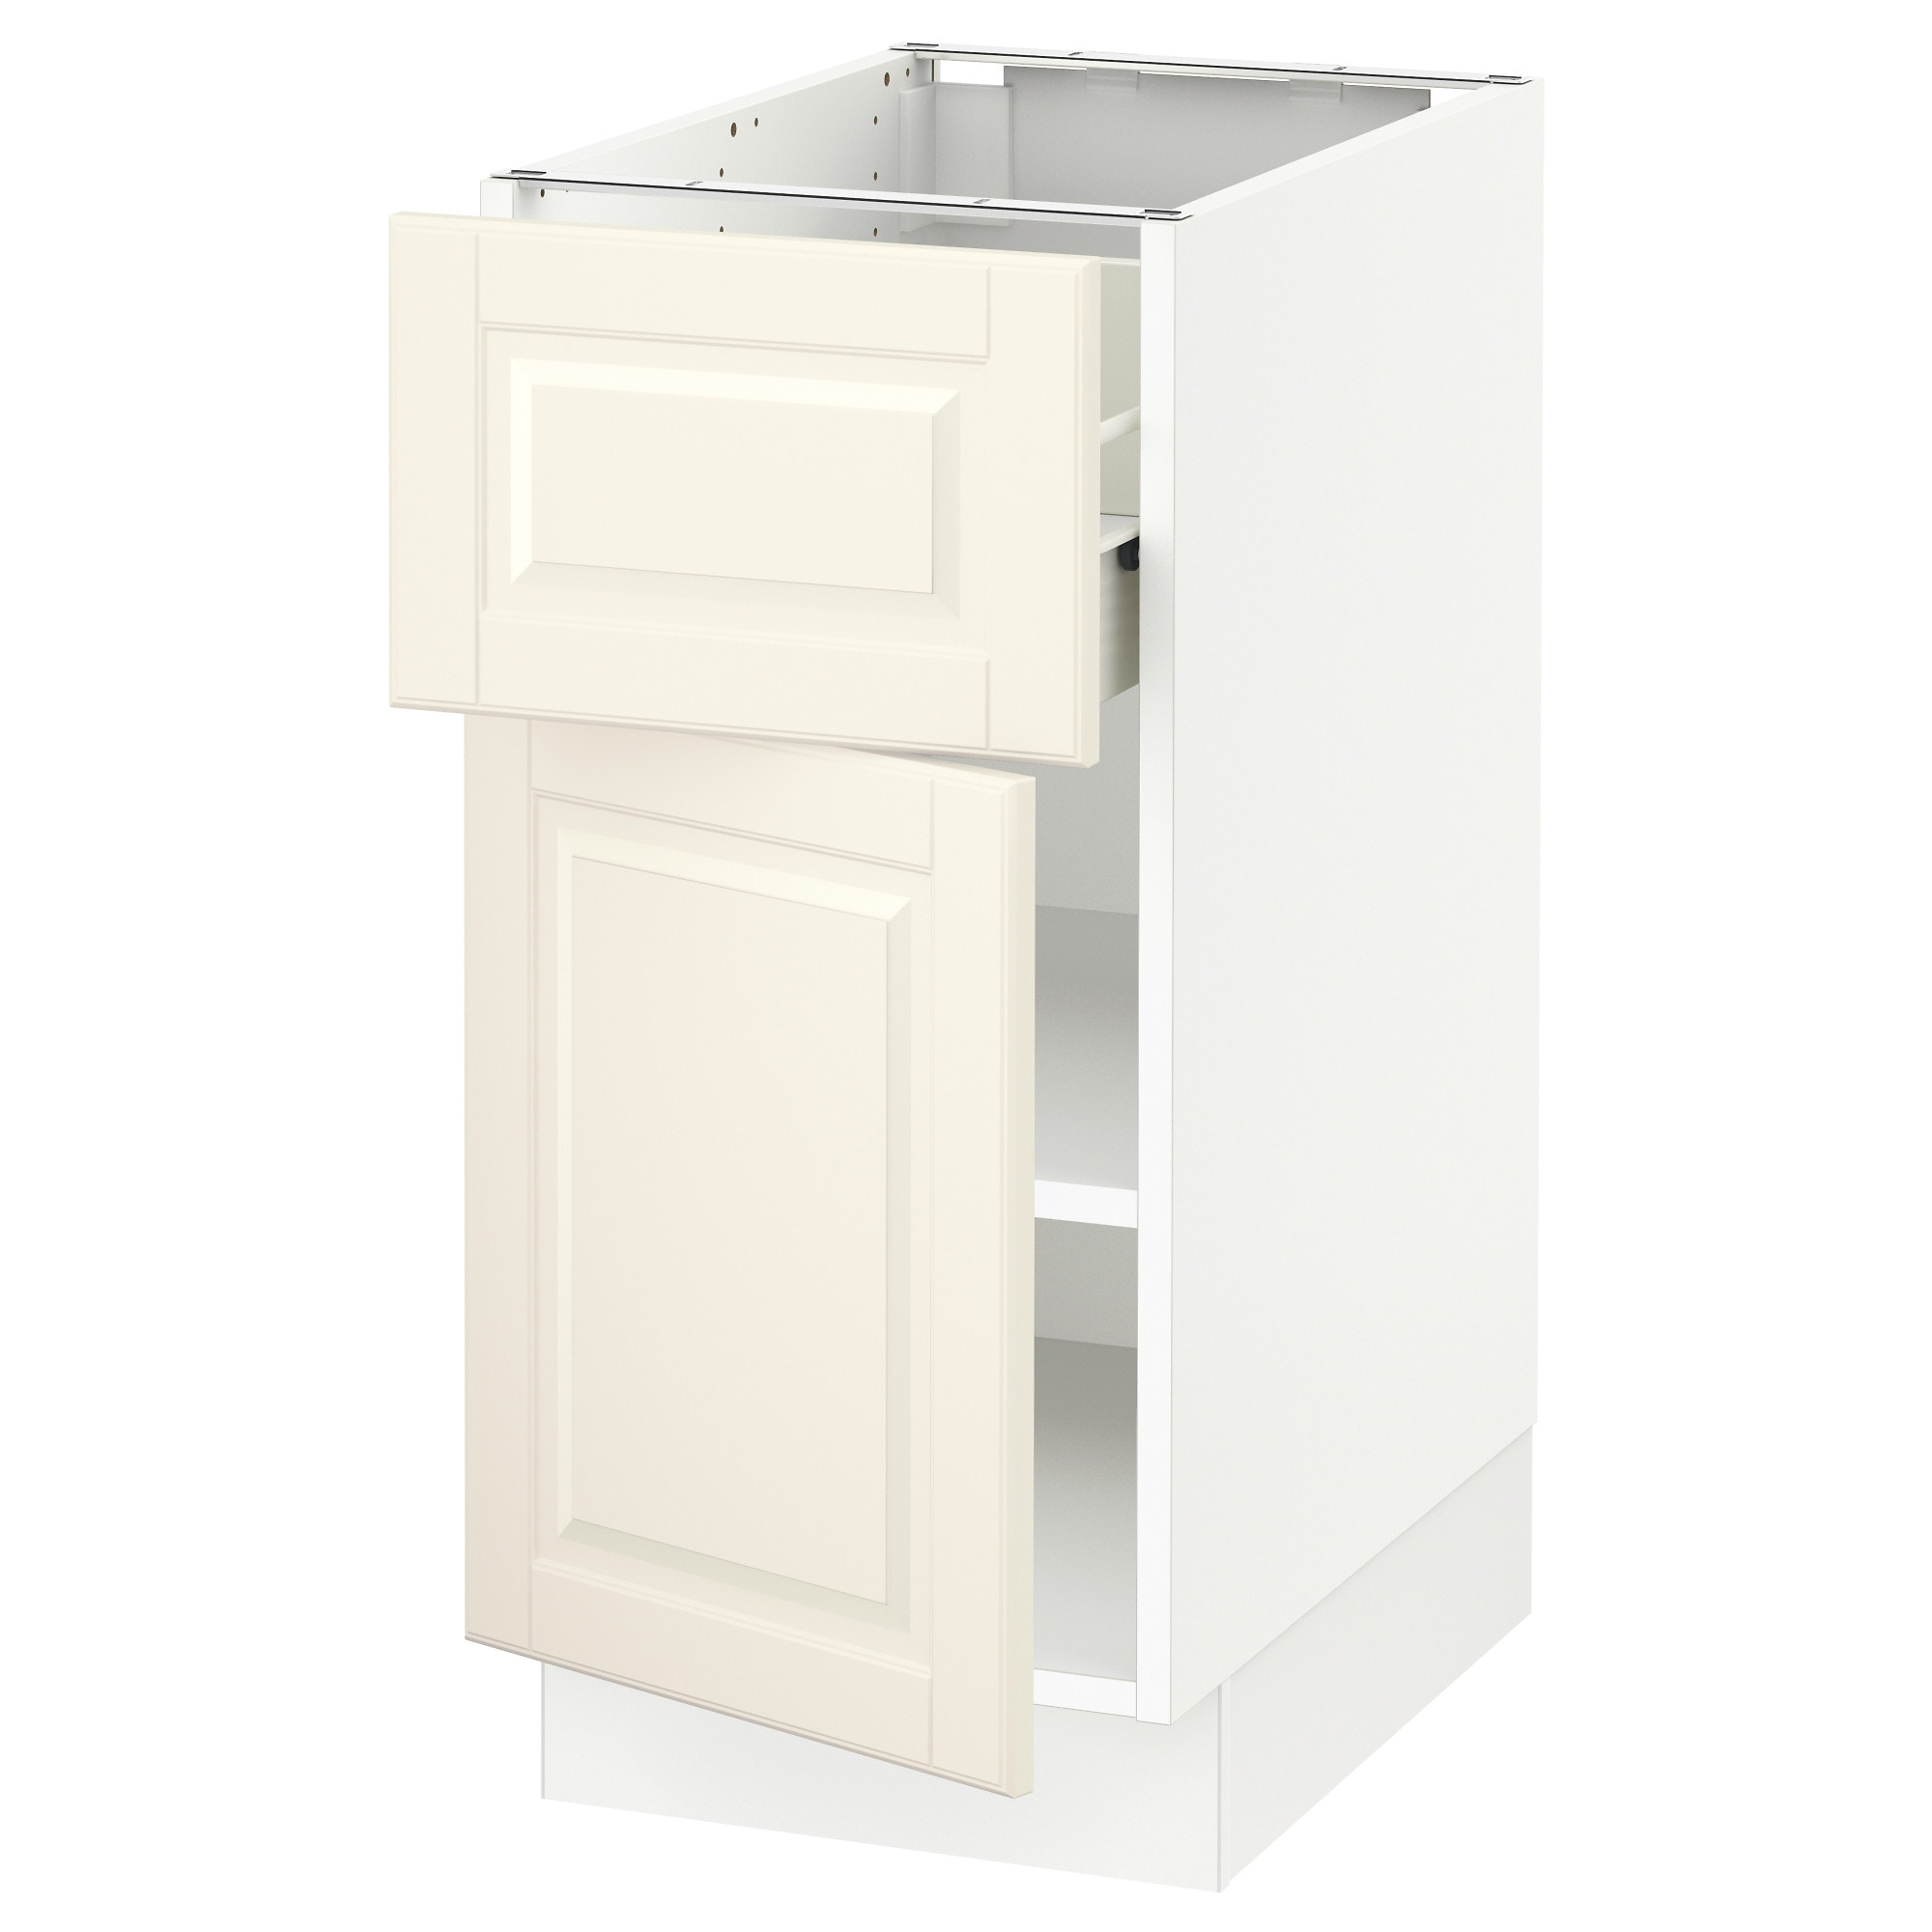 SEKTION Base Cabinet With Drawer/door   White, Fö, Bodbyn Off White,  15x24x30